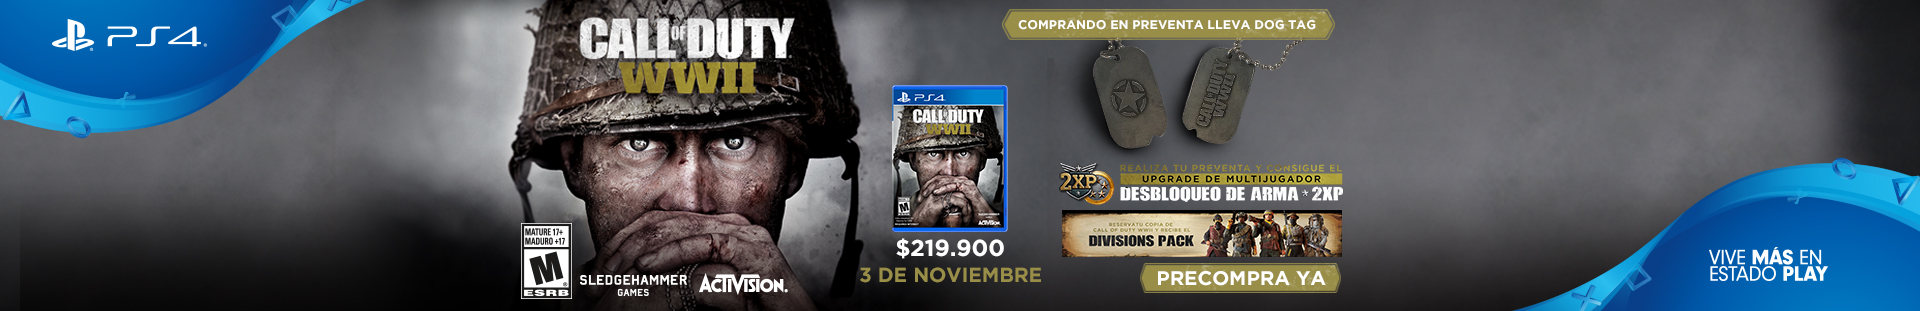 CAT-AK-KT-1-videojuegos-preventaCODWW2-cat-sept28-nov1